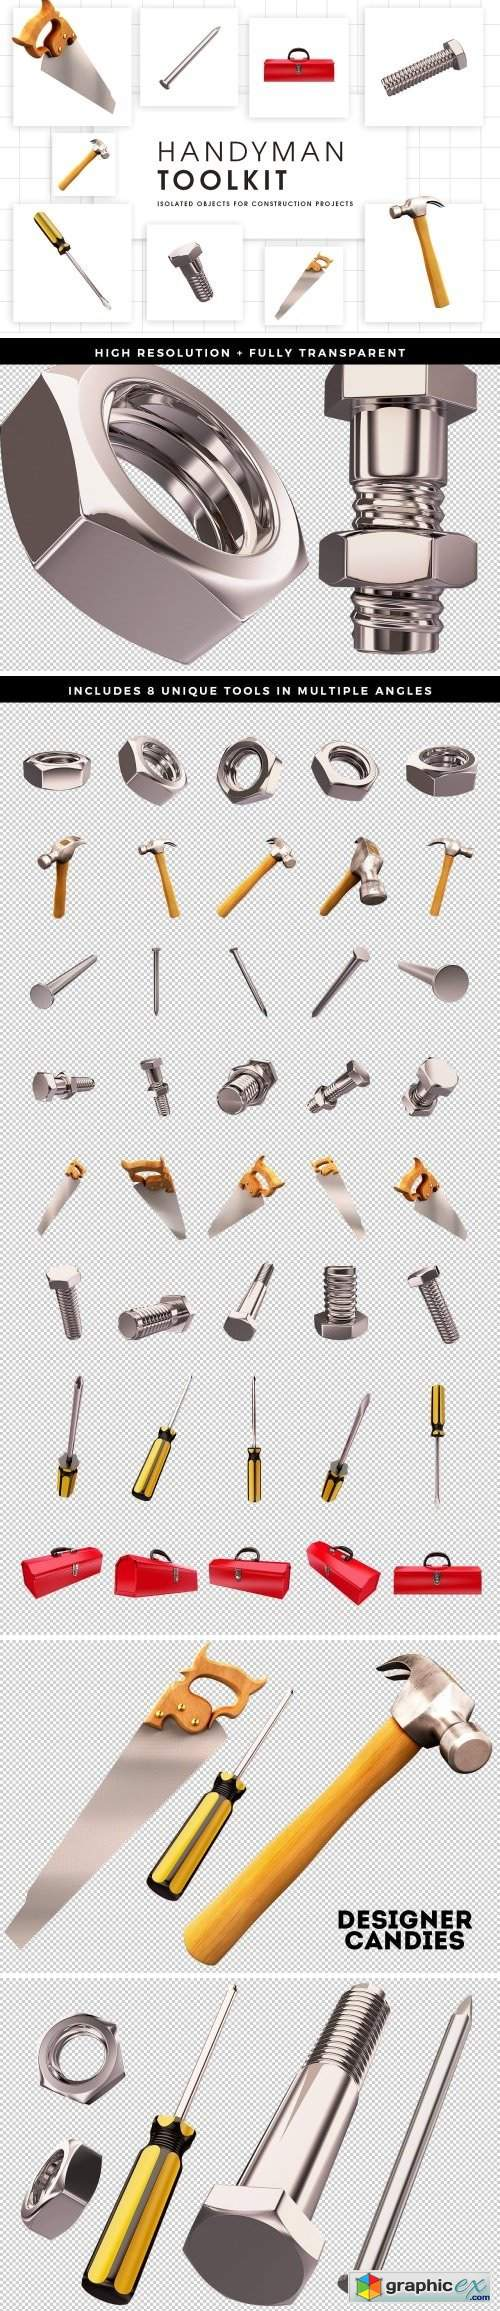 The Handyman Toolkit